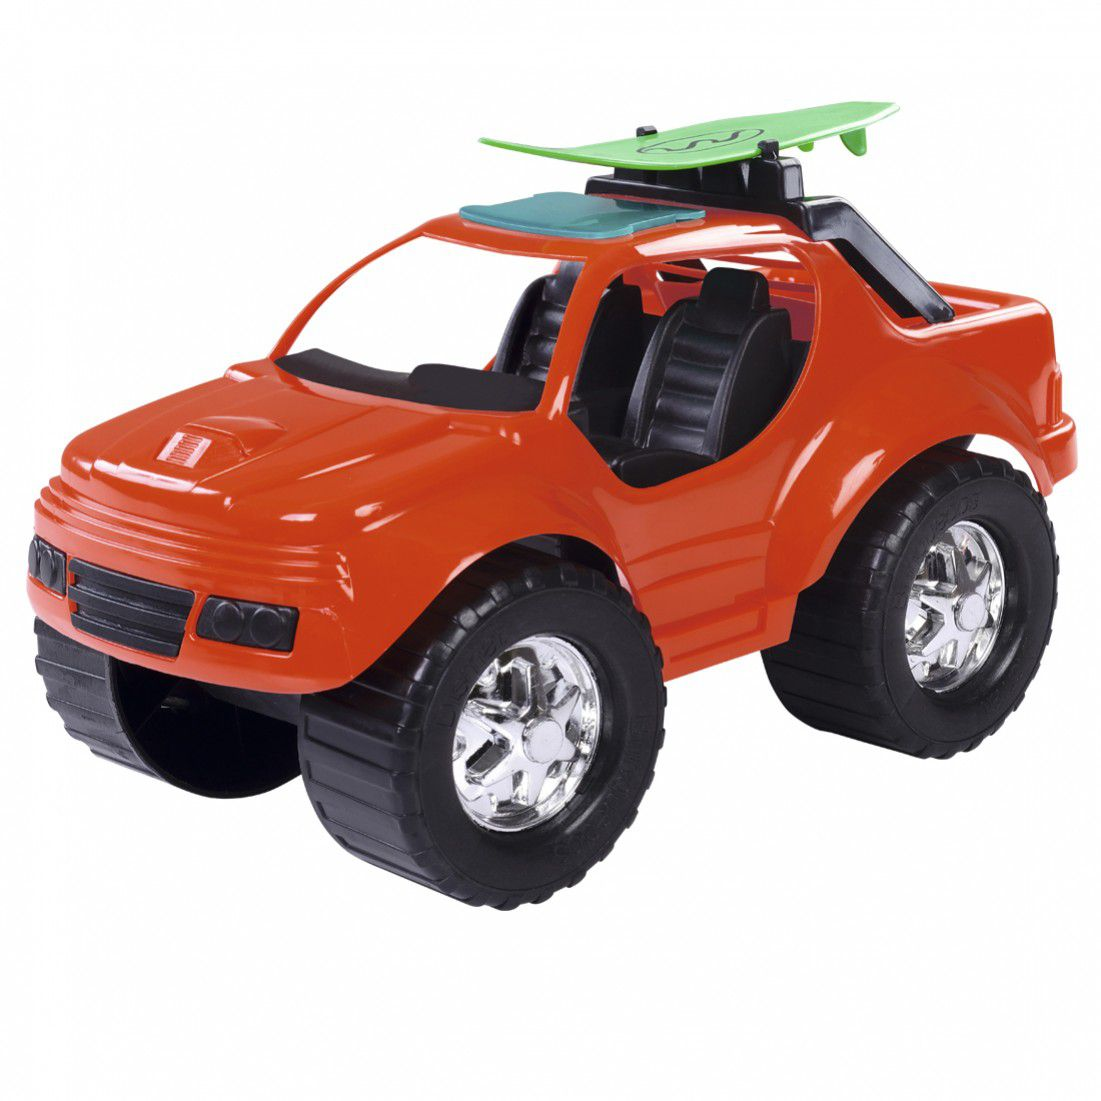 CARRO RODA LIVRE MK140 SPEED KING SURF DISMAT